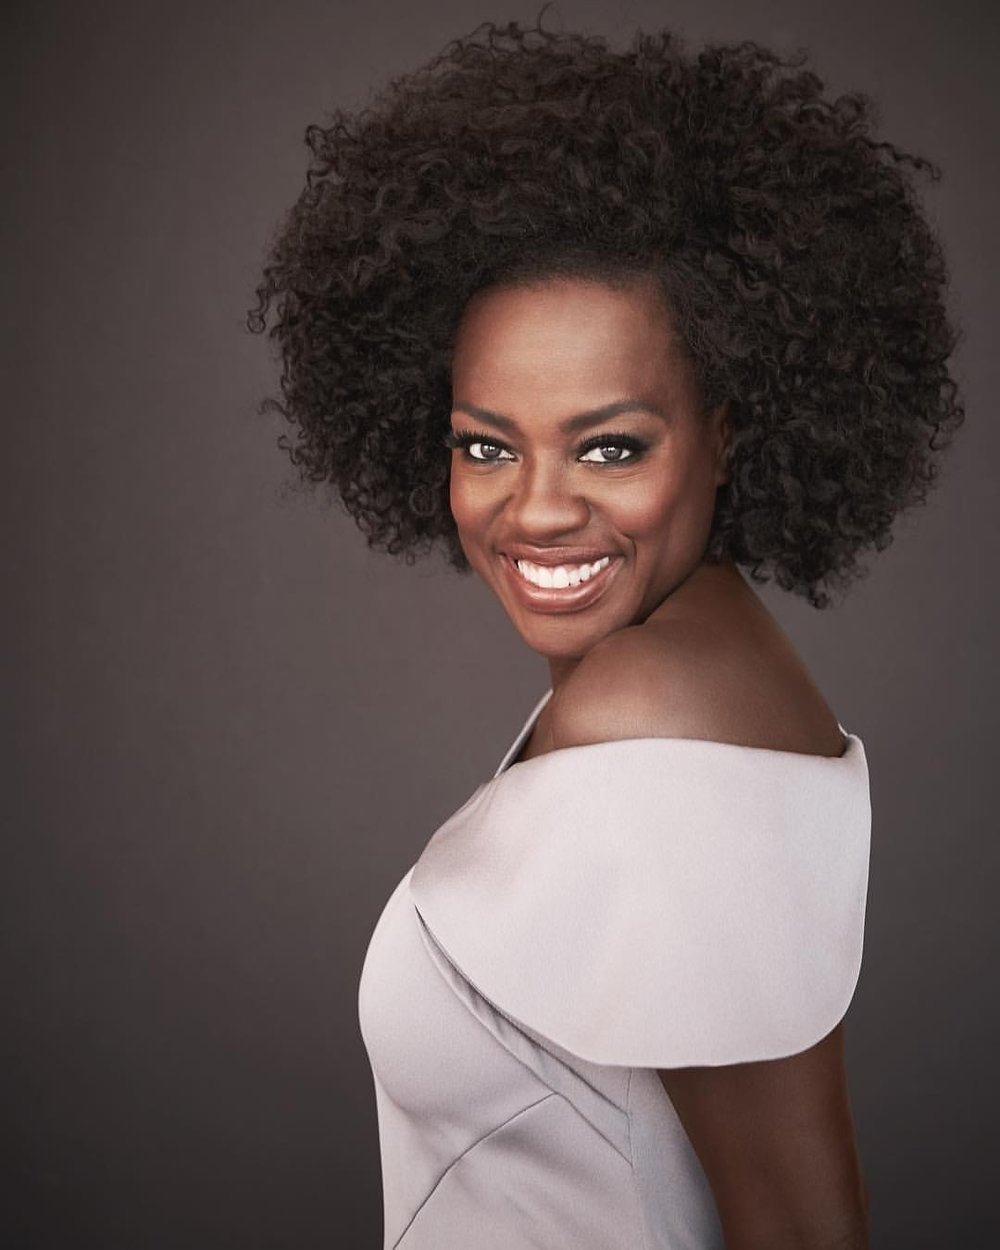 """Actress Viola Davis Photographed by John Russo for the promotion of her latest film """"Widows"""""""